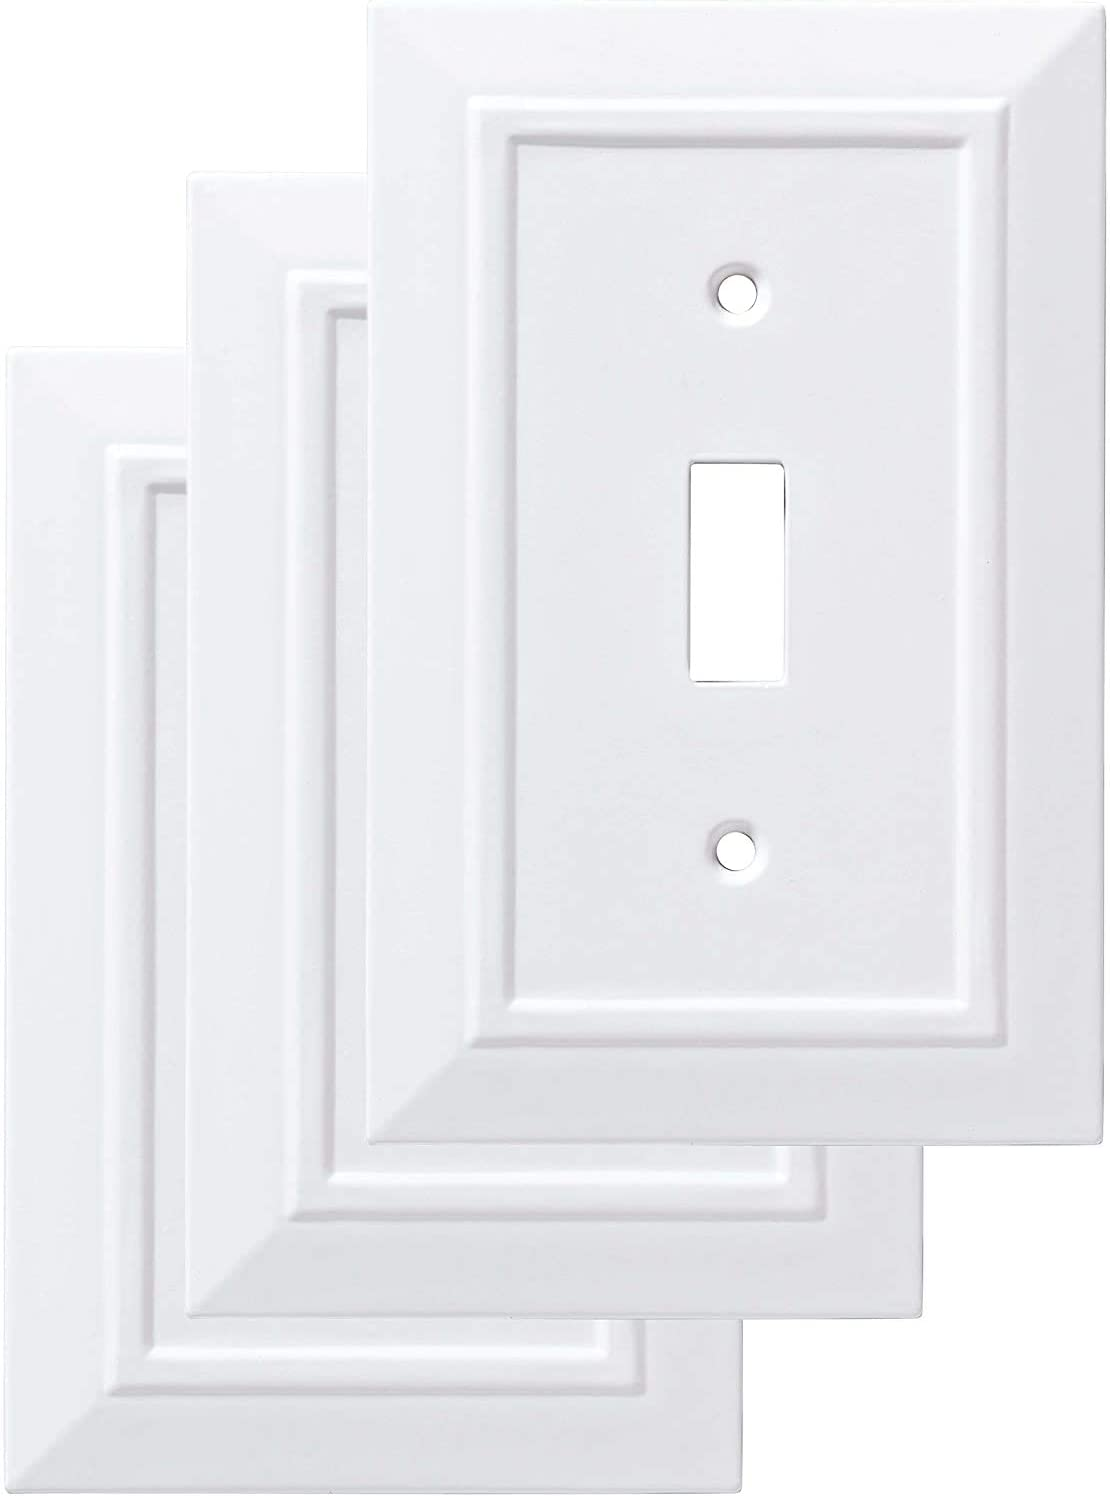 Franklin Brass W35241V-PW-C Classic Architecture Single Switch Wall Plate/Switch Plate/Cover, White, 3-Pack